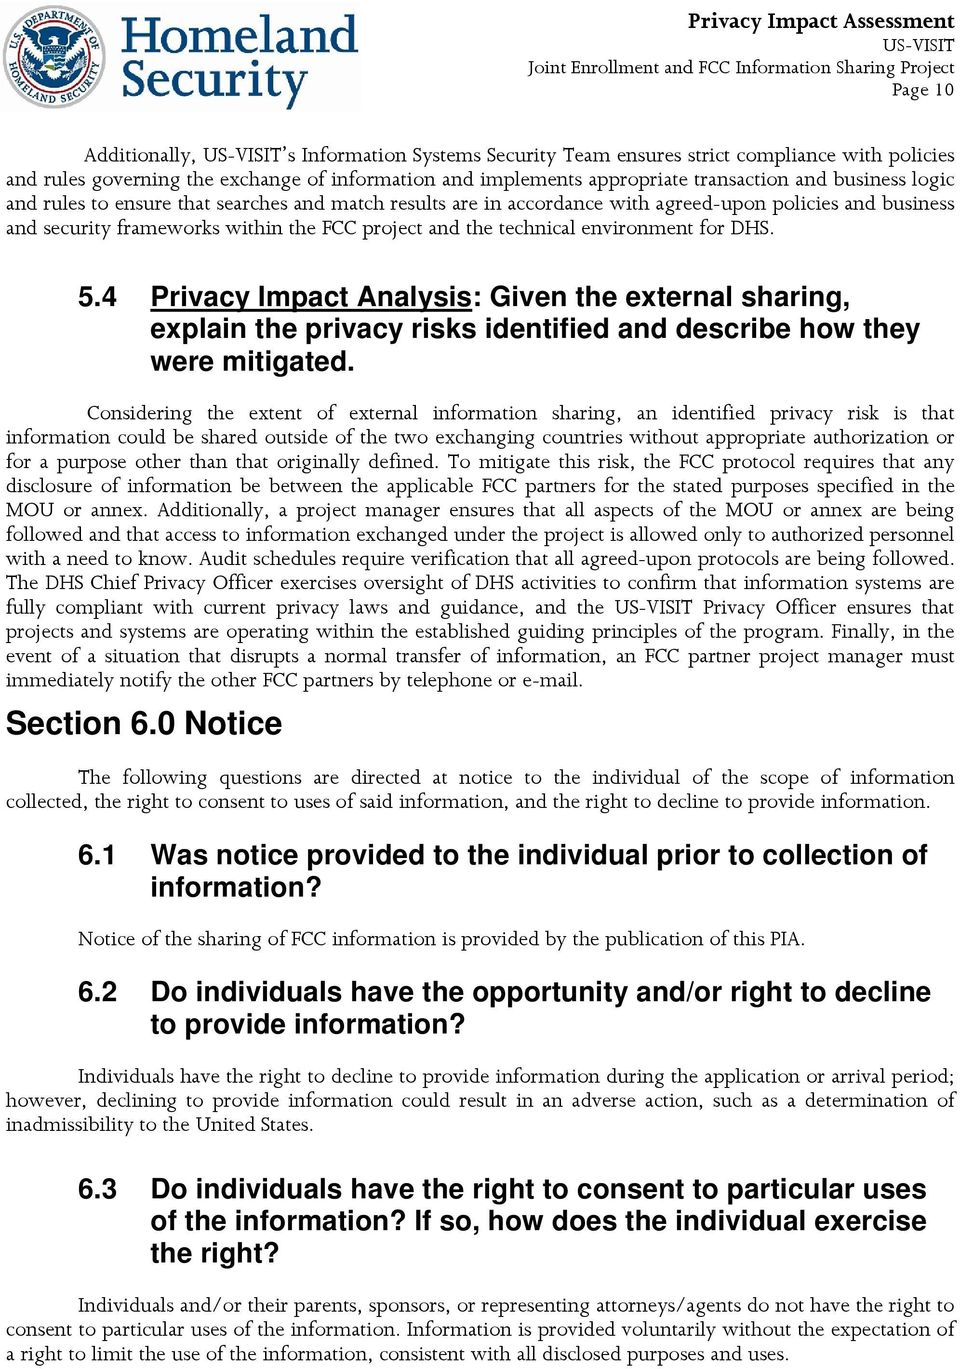 5.4 Privacy Impact Analysis: Given the external sharing, explain the privacy risks identified and describe how they were mitigated.